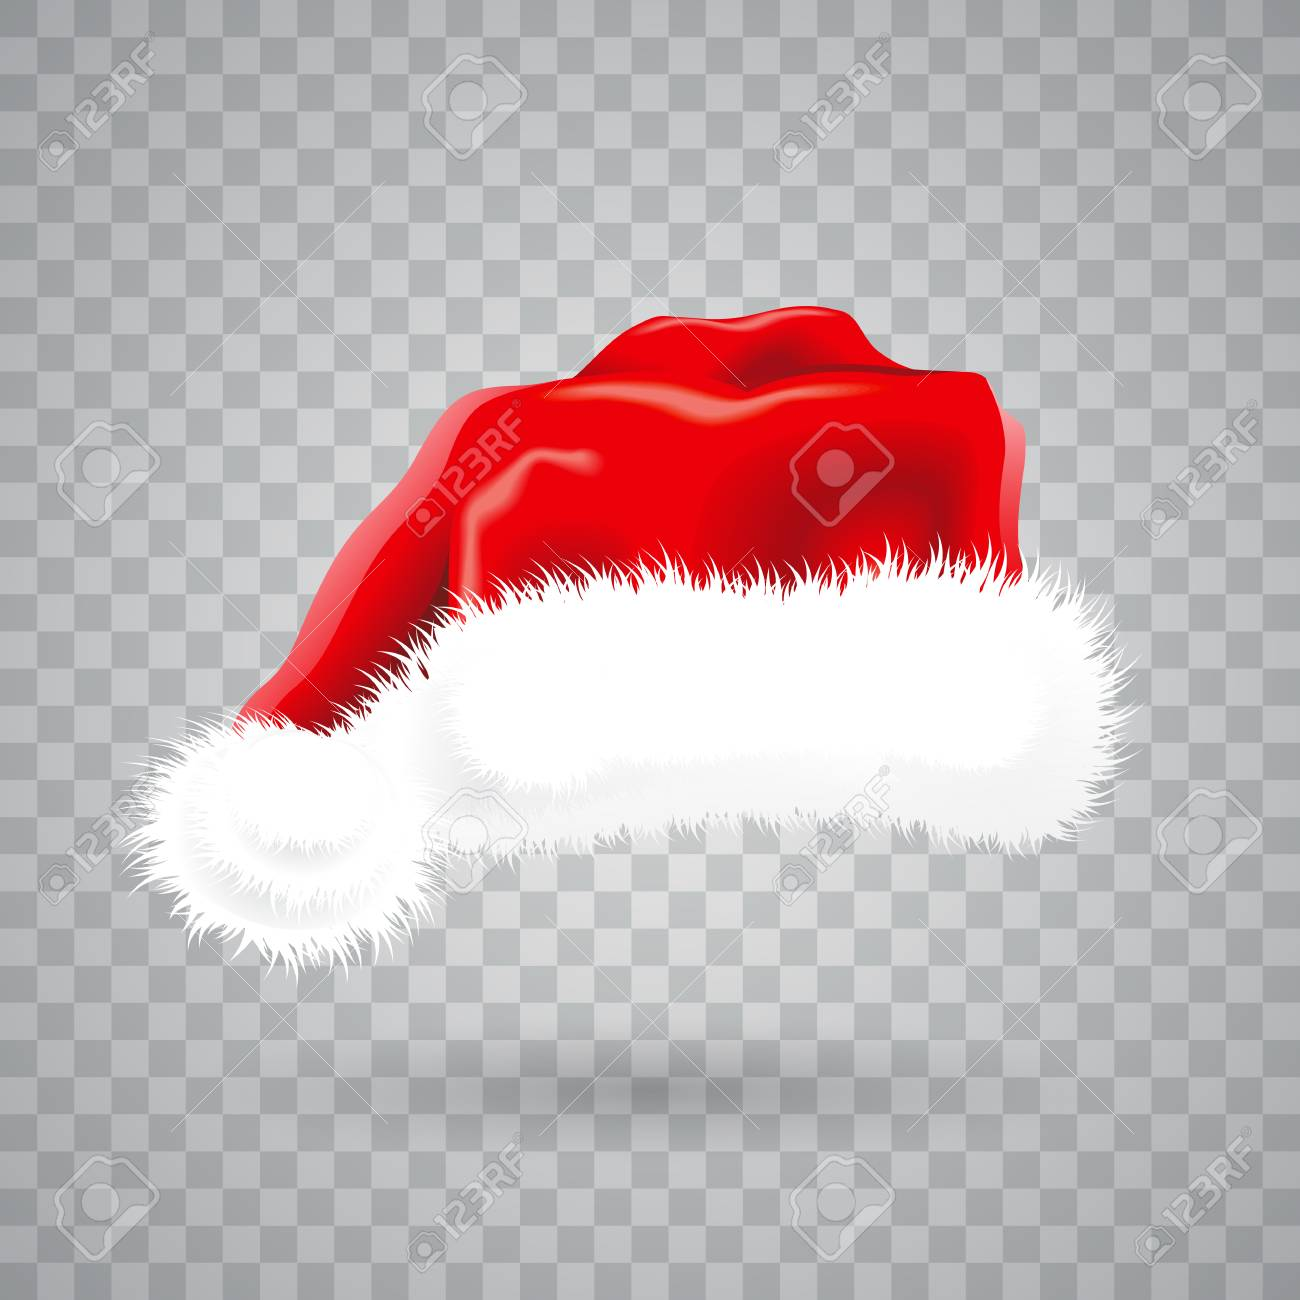 Christmas Hat Transparent.Christmas Illustration With Red Santa Hat On Transparent Background